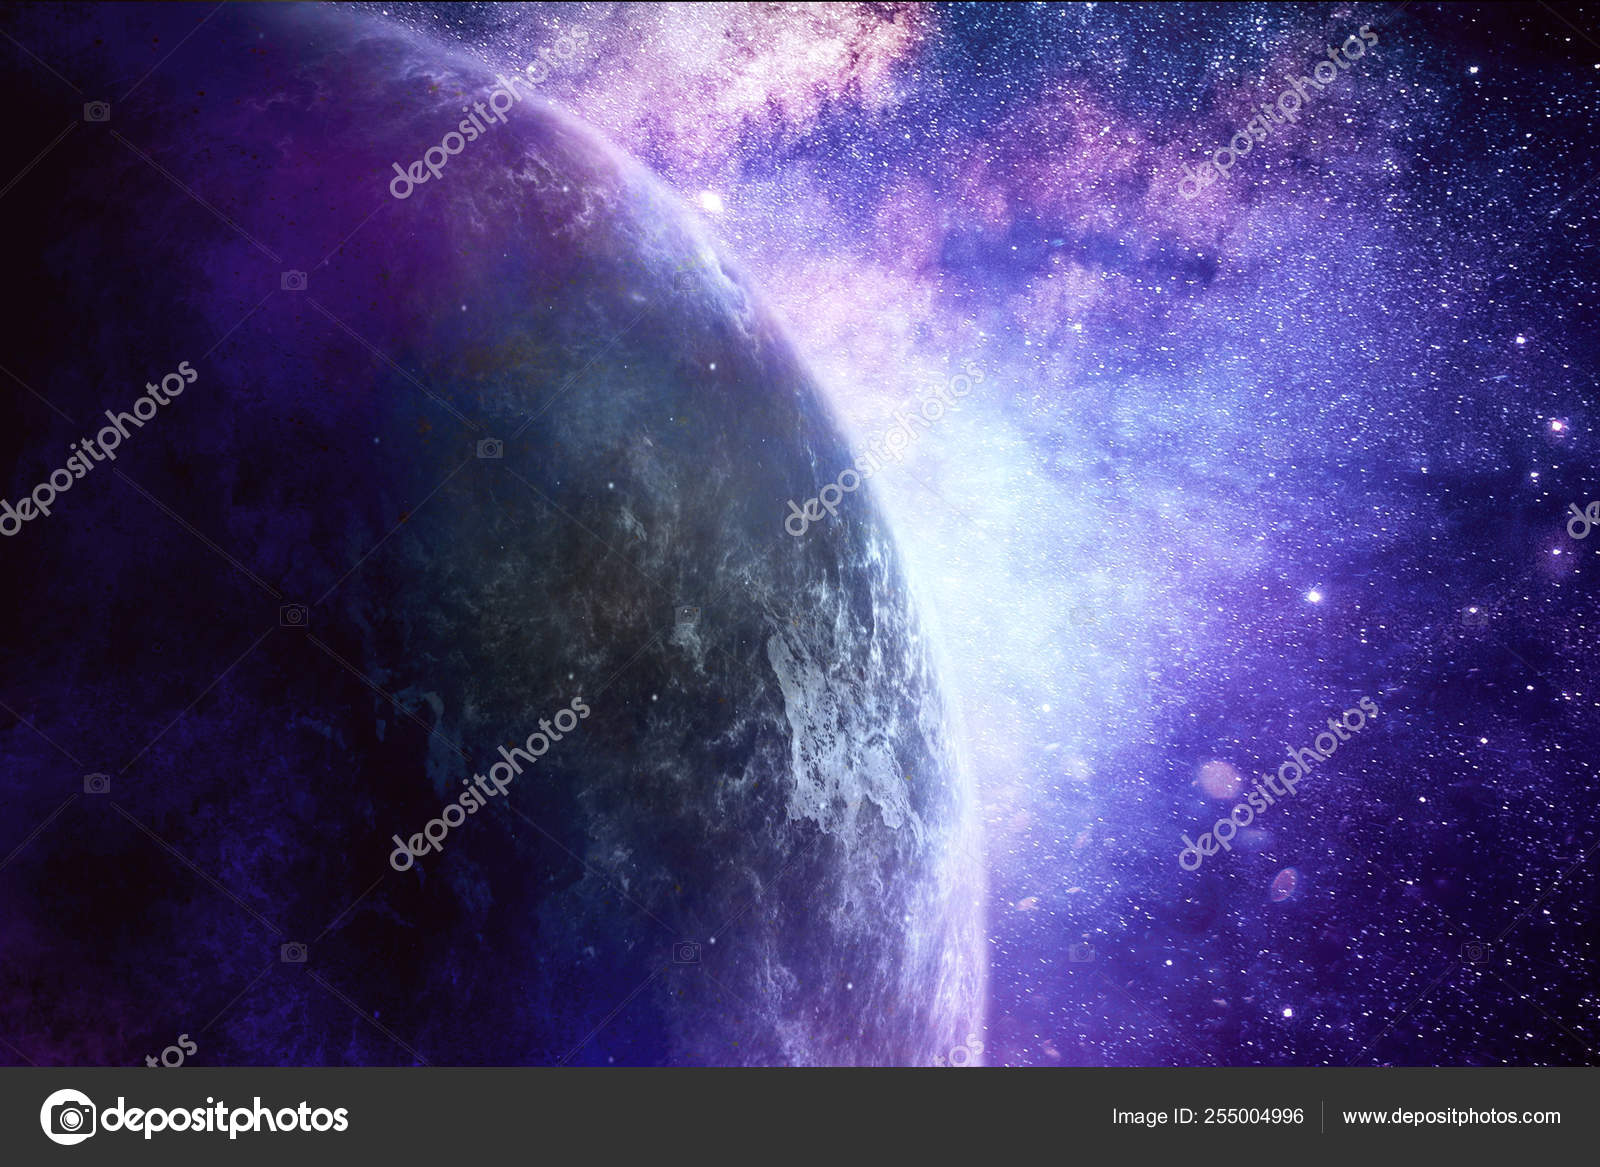 Abstract Artistic Planet Horizon On A Dramatic Colorful Galaxy B Stock Photo C Mo Ali 255004996